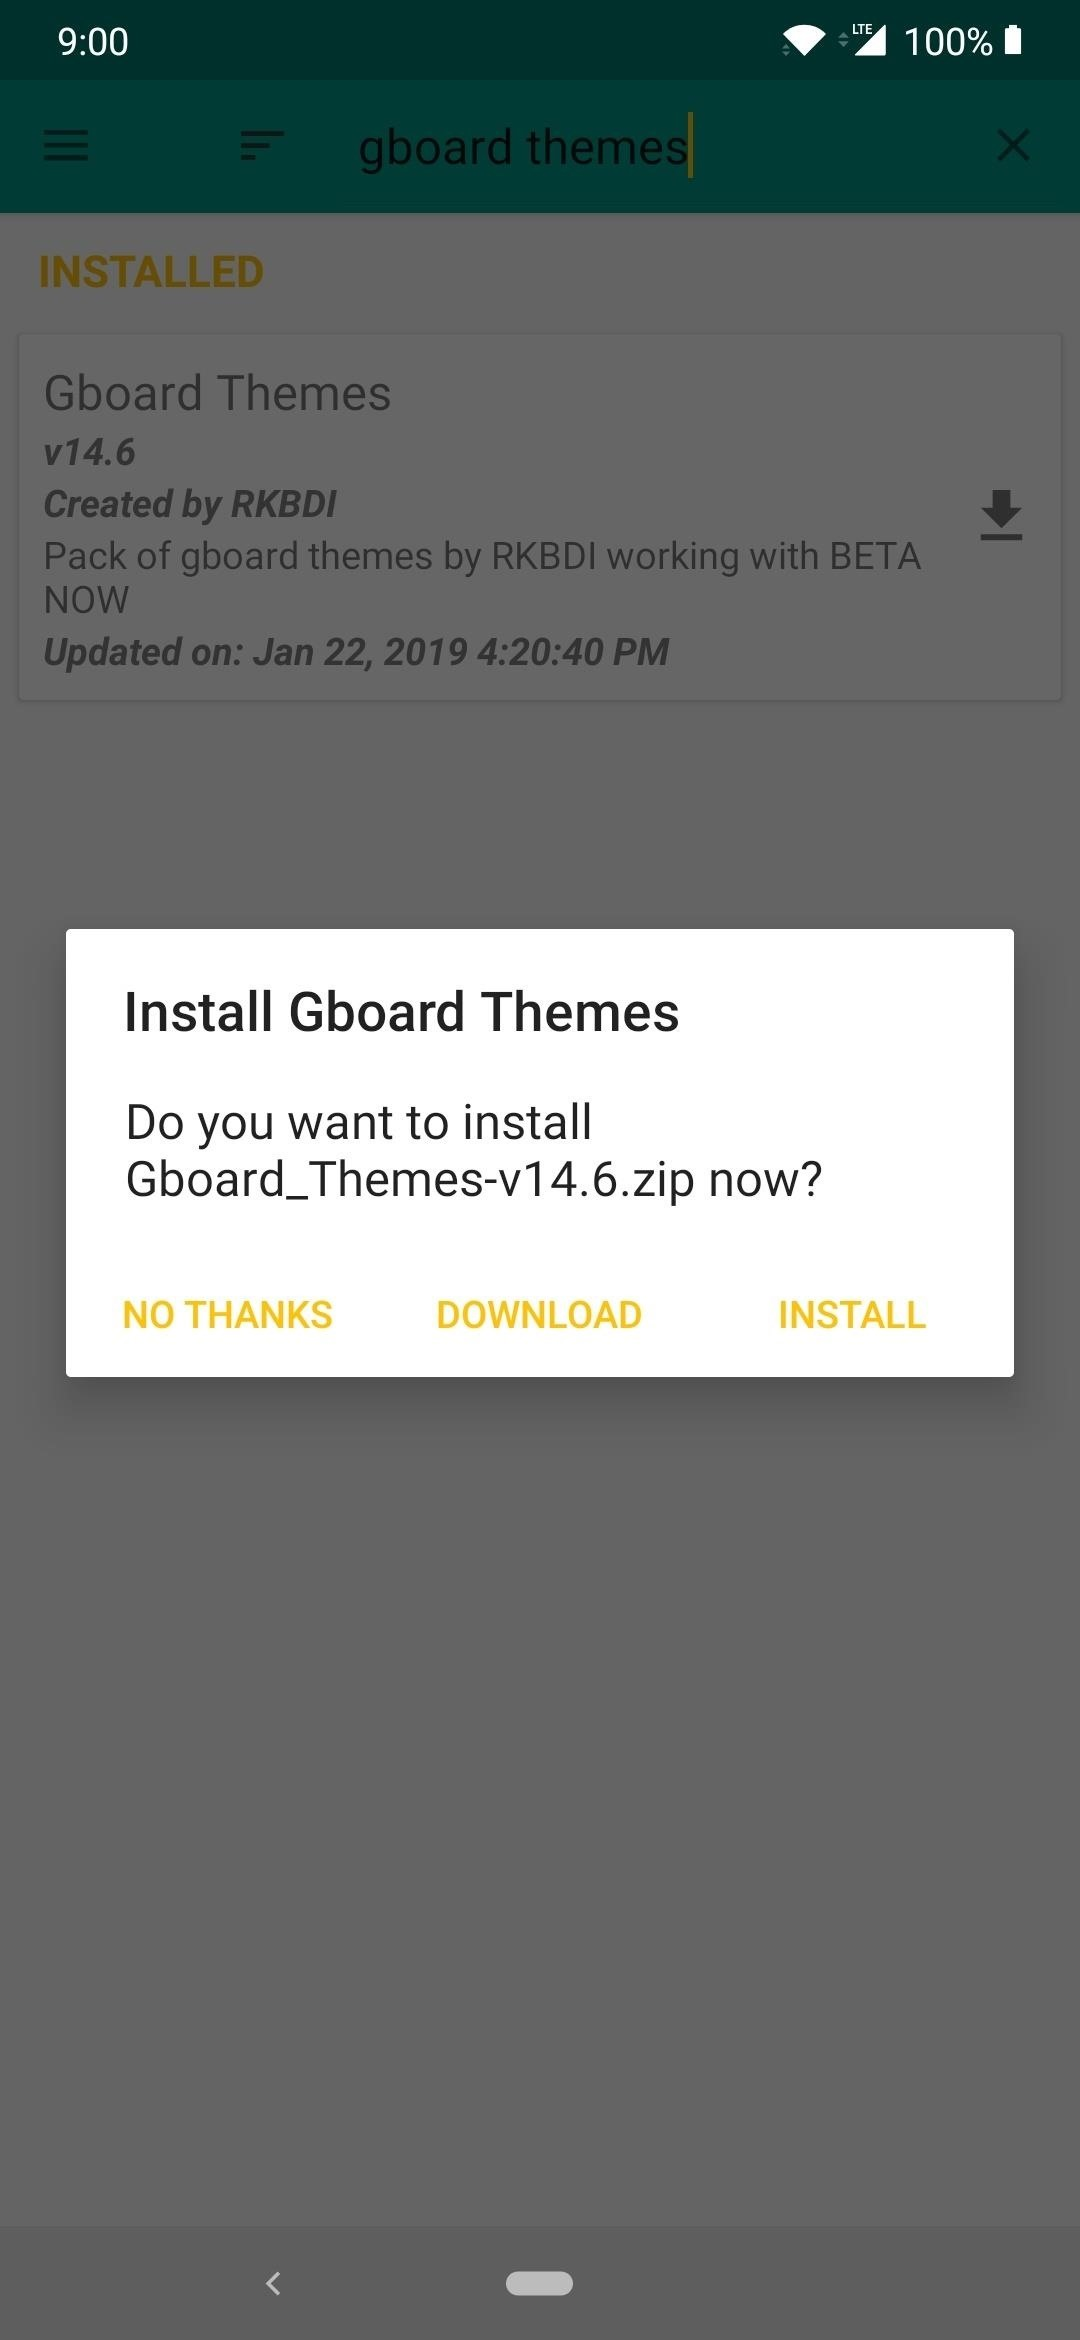 Get Over 100 New & Unique Themes for Gboard on Android